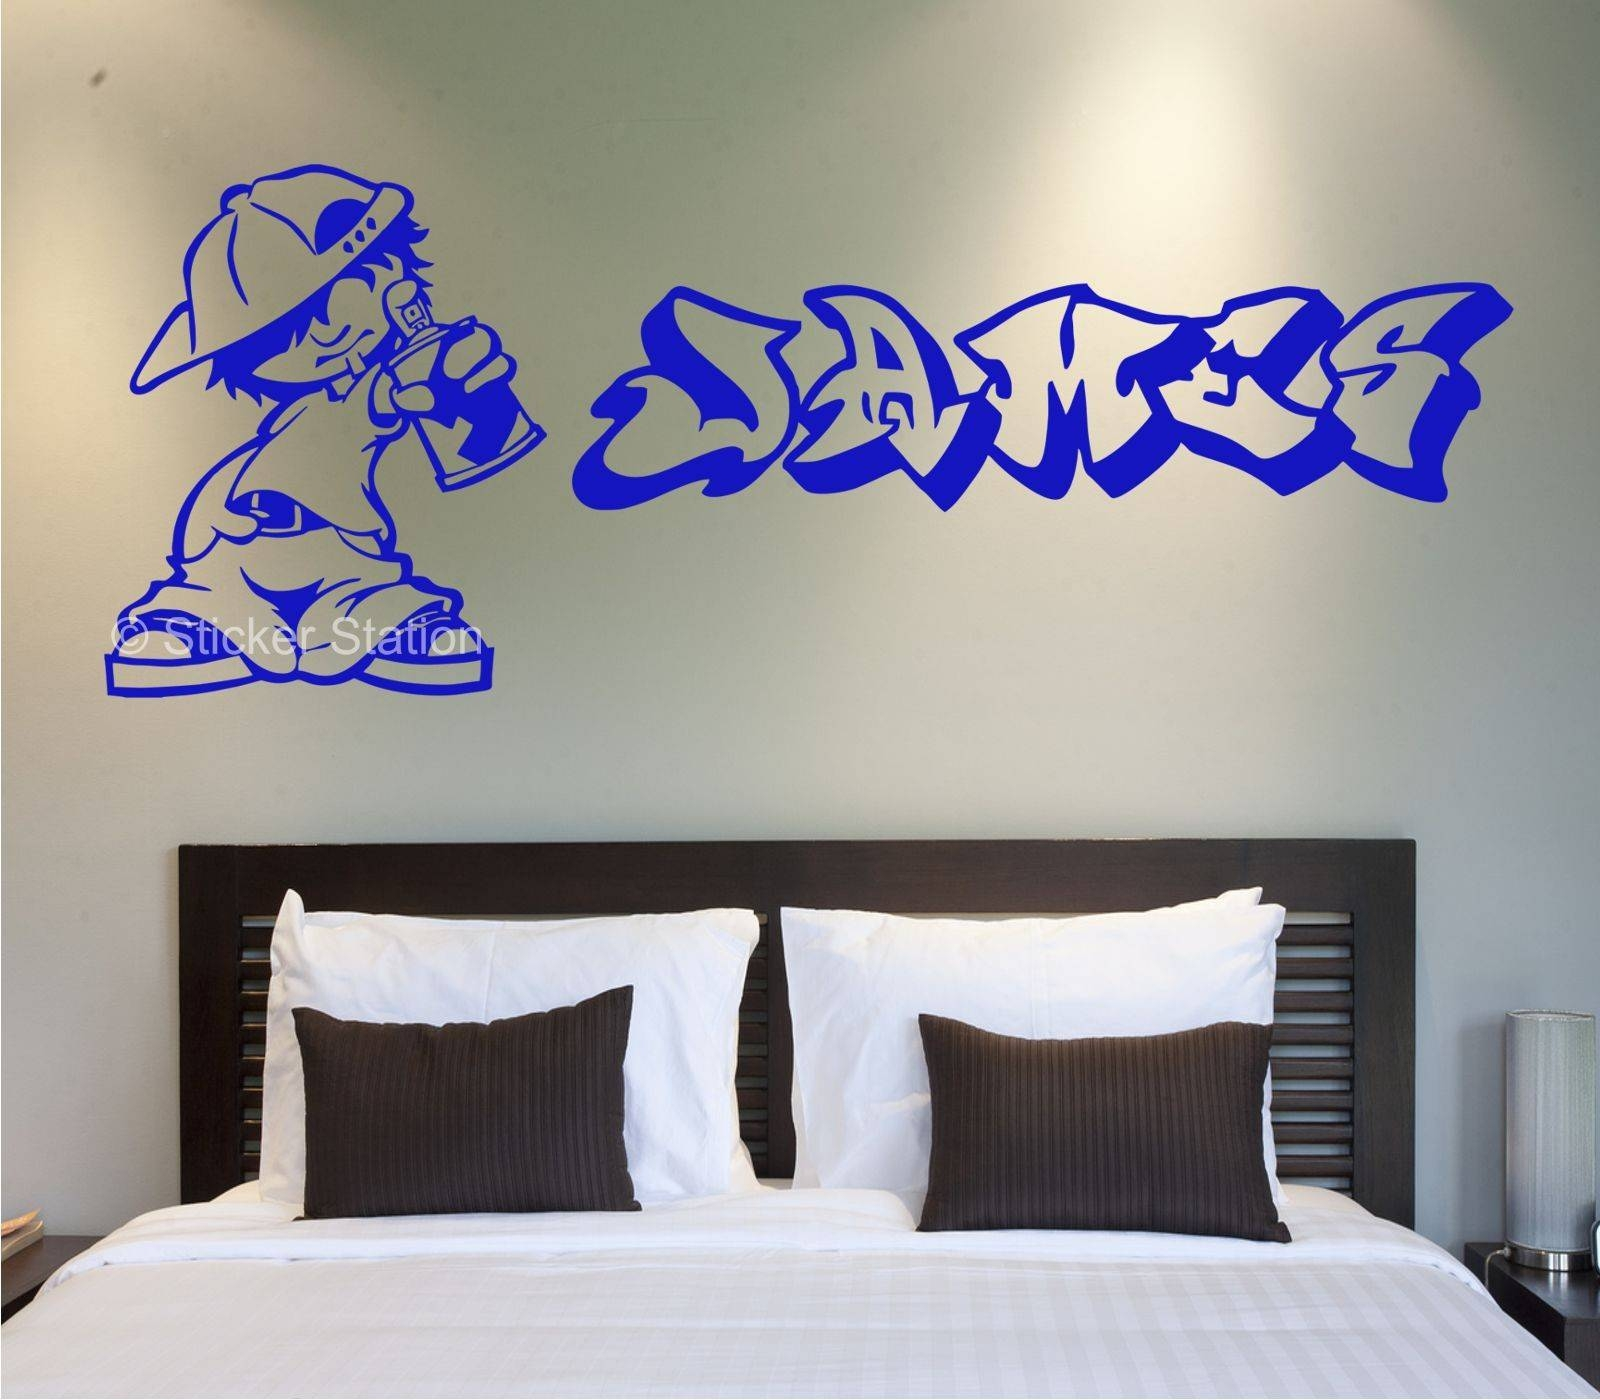 Graffiti Artist Personalised Wall Art Sticker – Sticker Station Throughout Recent Graffiti Wall Art Stickers (Gallery 2 of 30)